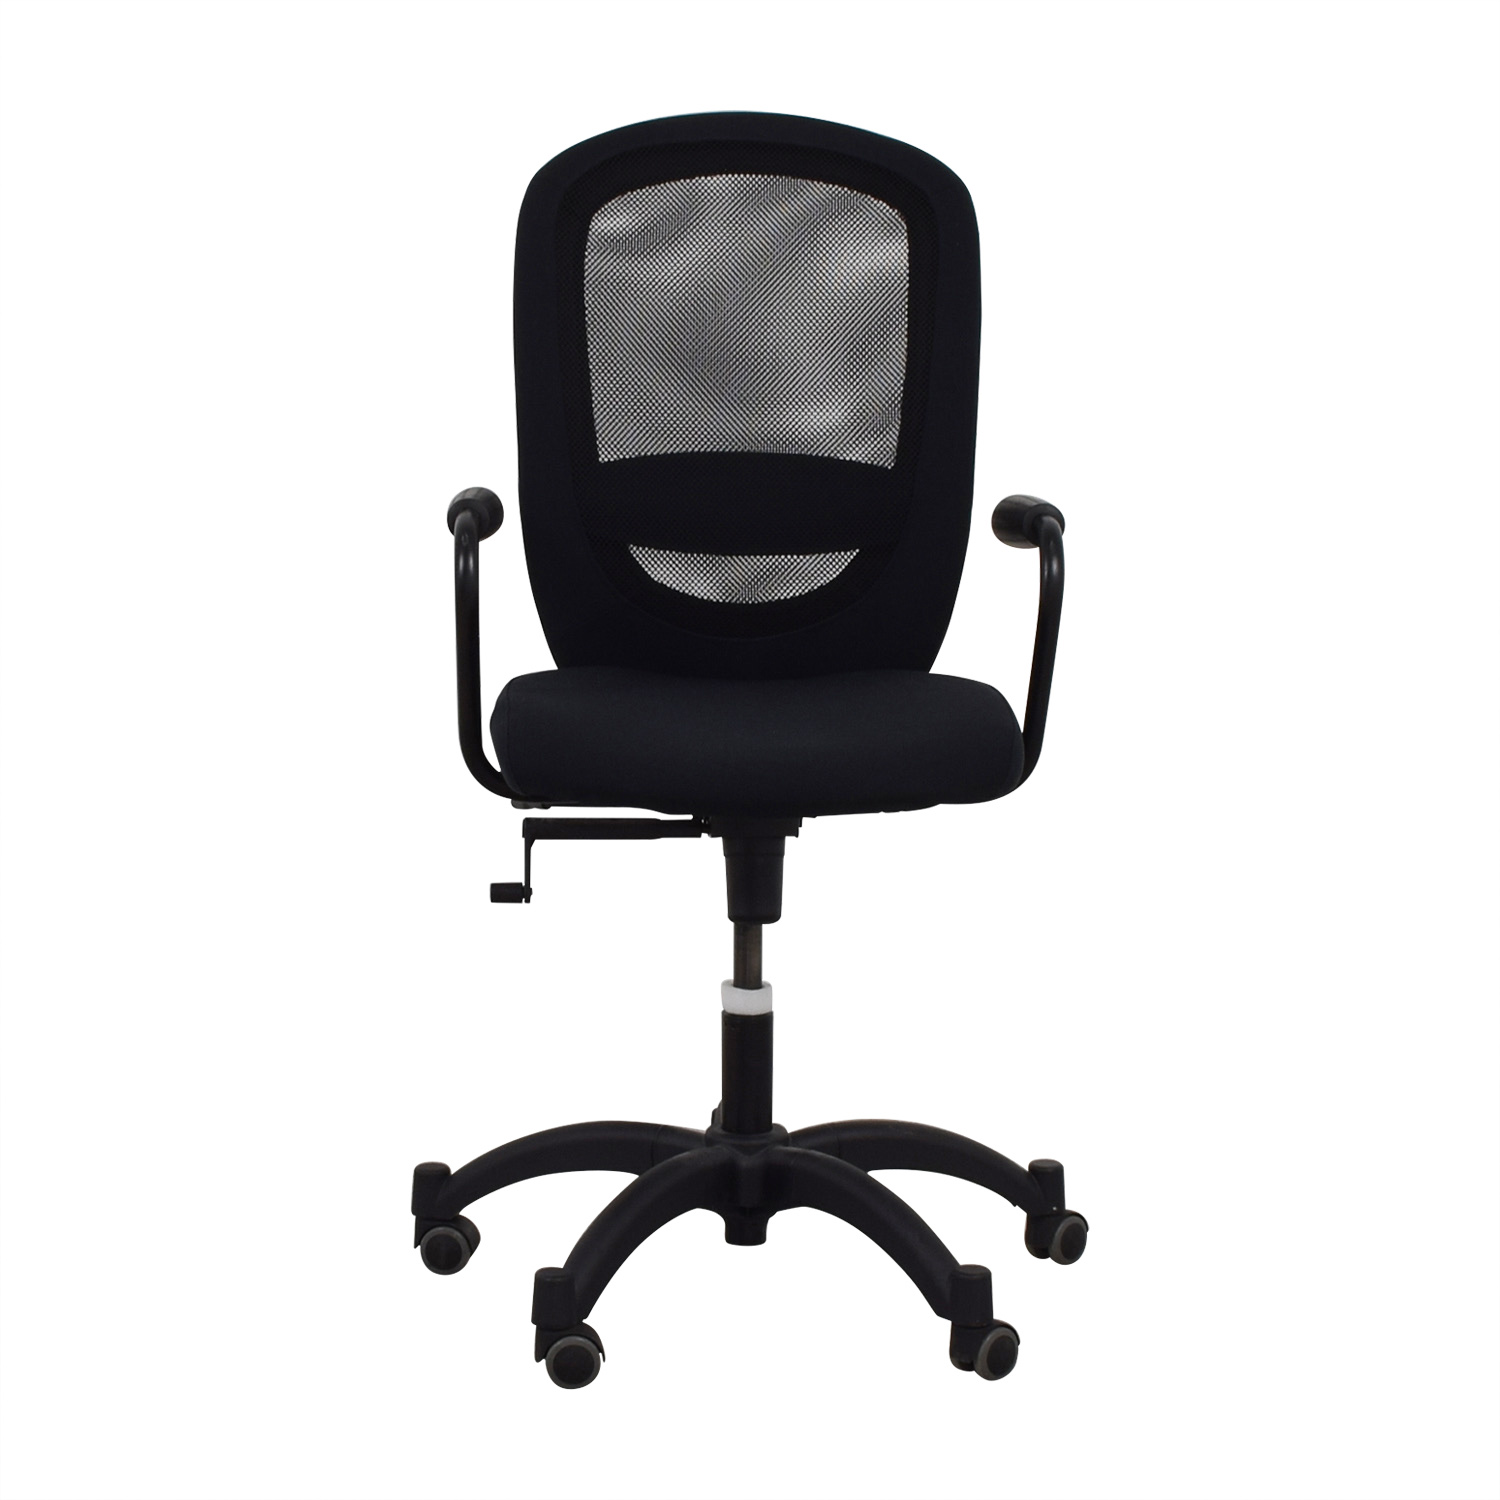 Buy Office Chairs Online Home Office Chairs Used Home Office Chairs For Sale